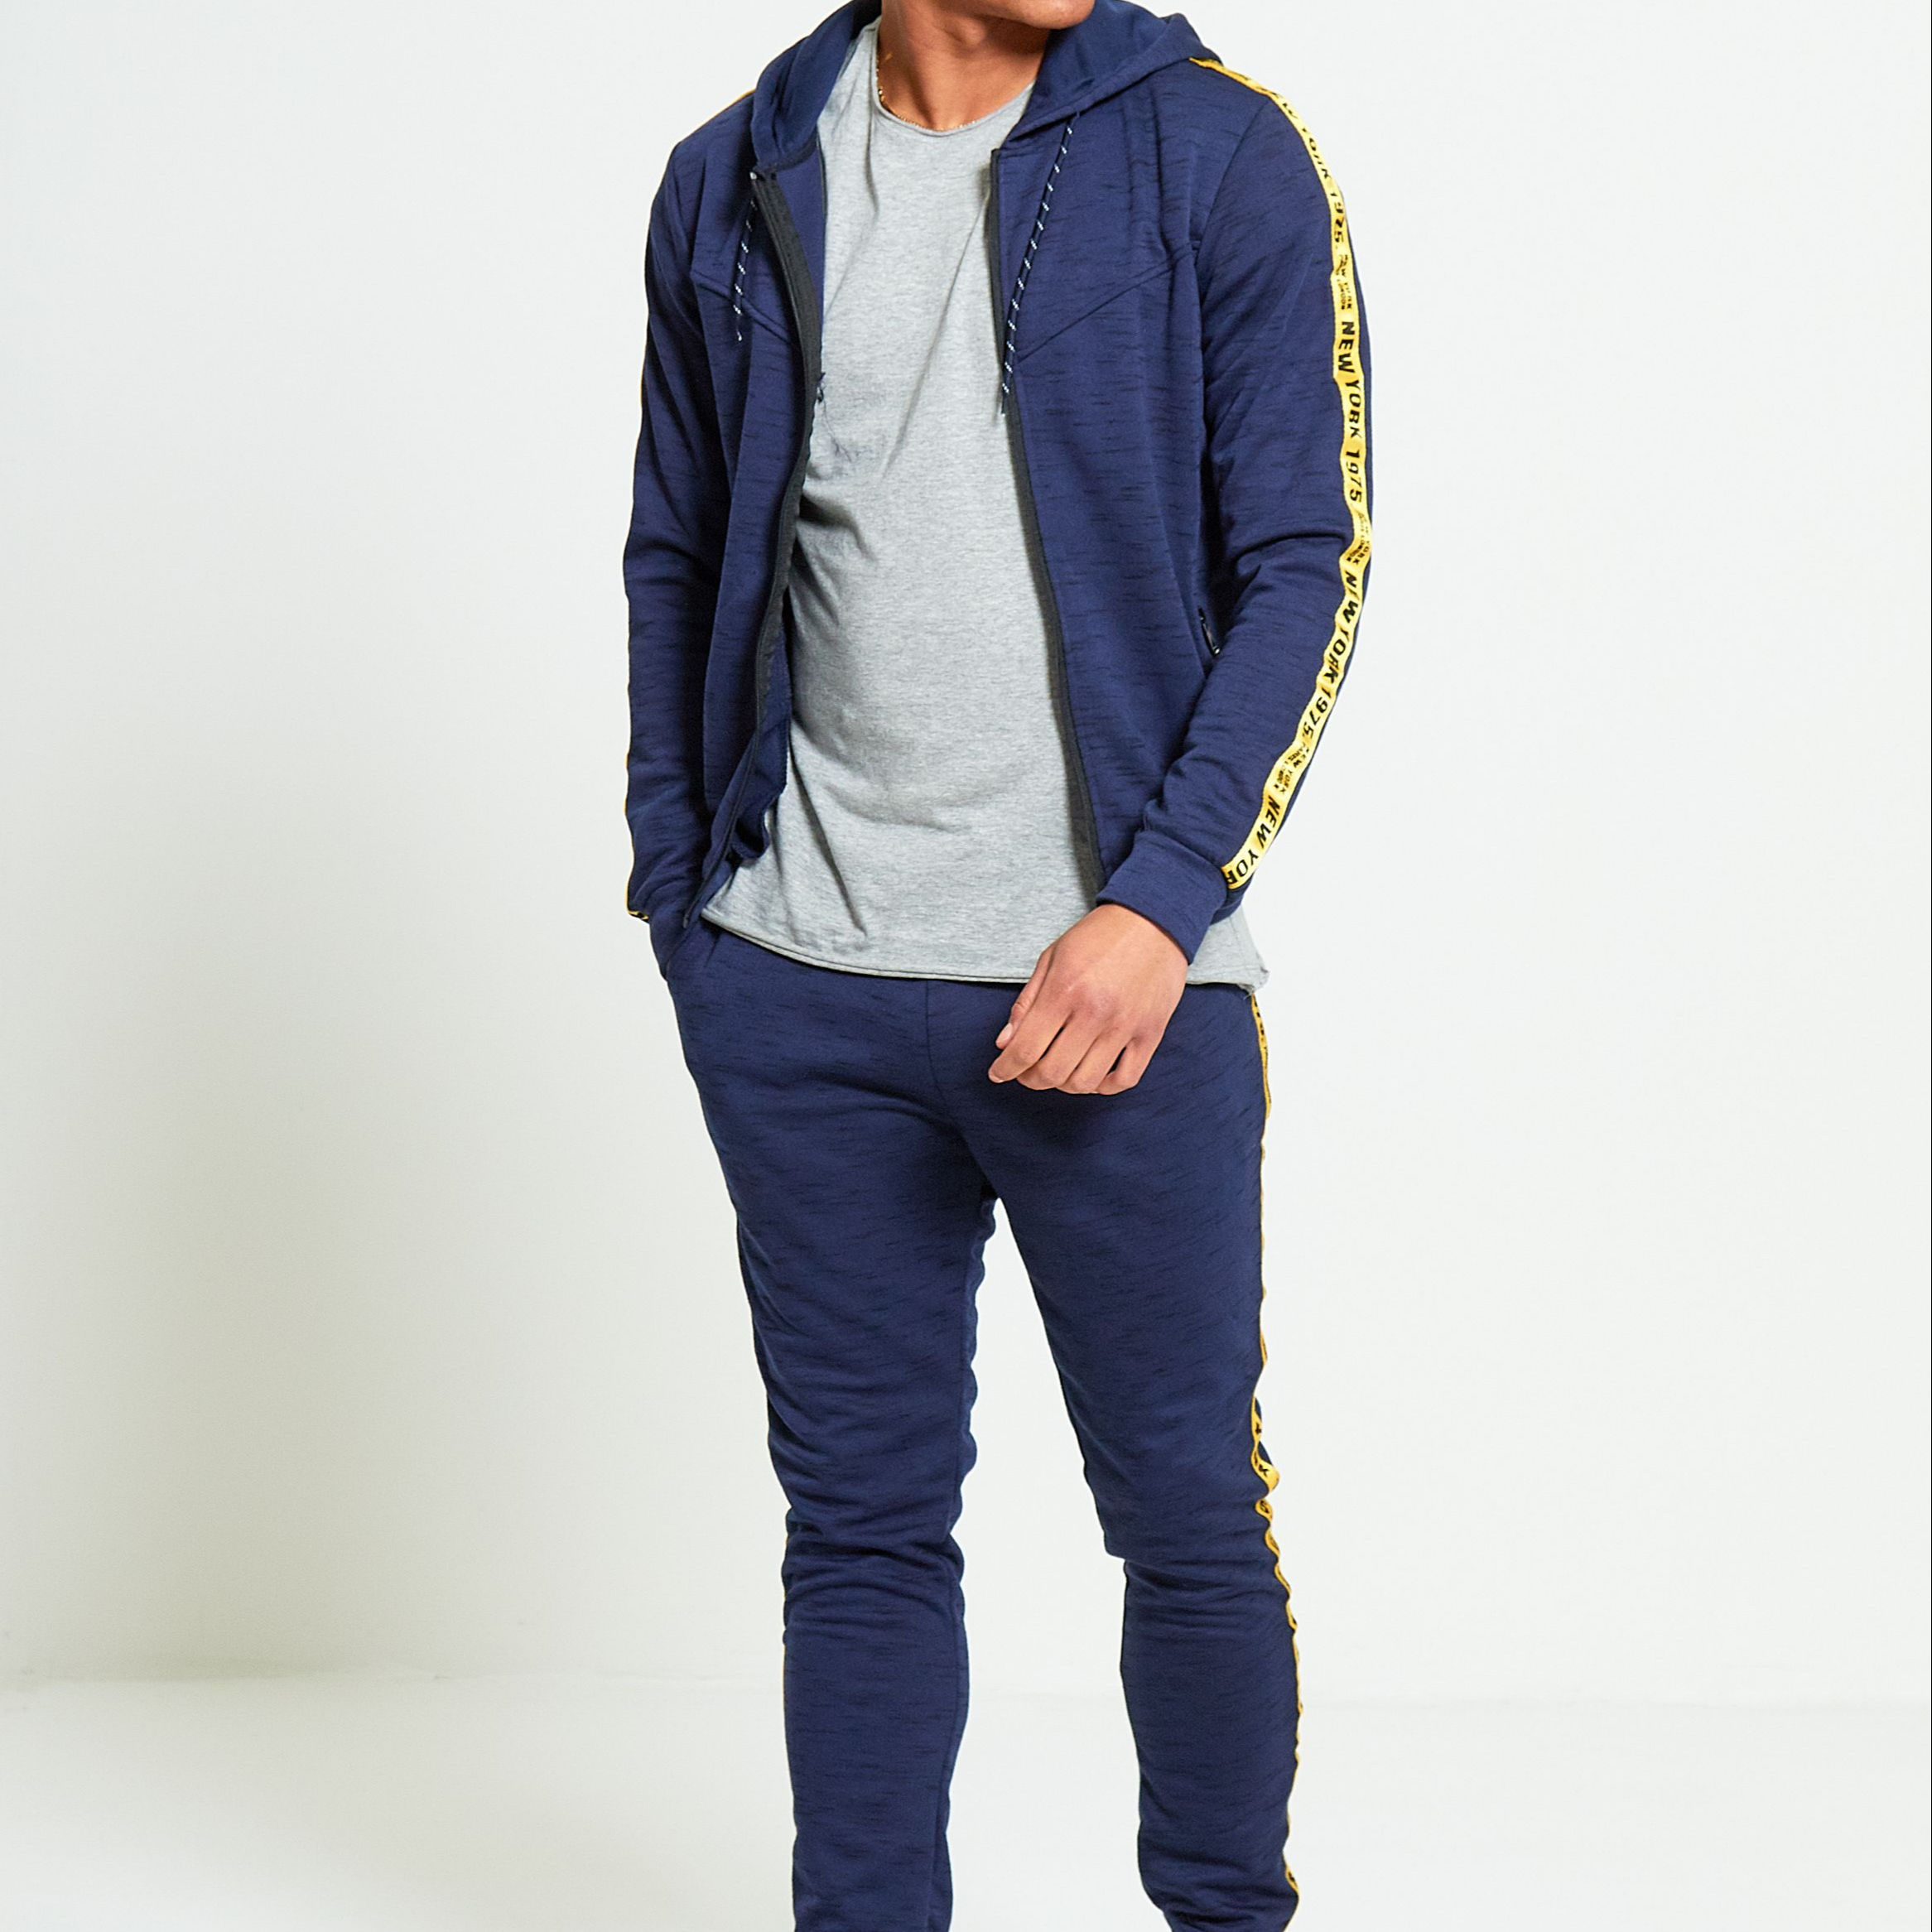 Wholesale Sports Casual Soft Men's Jogging Sets/Winter High Quality Custom Men's Fitness Tracksuits